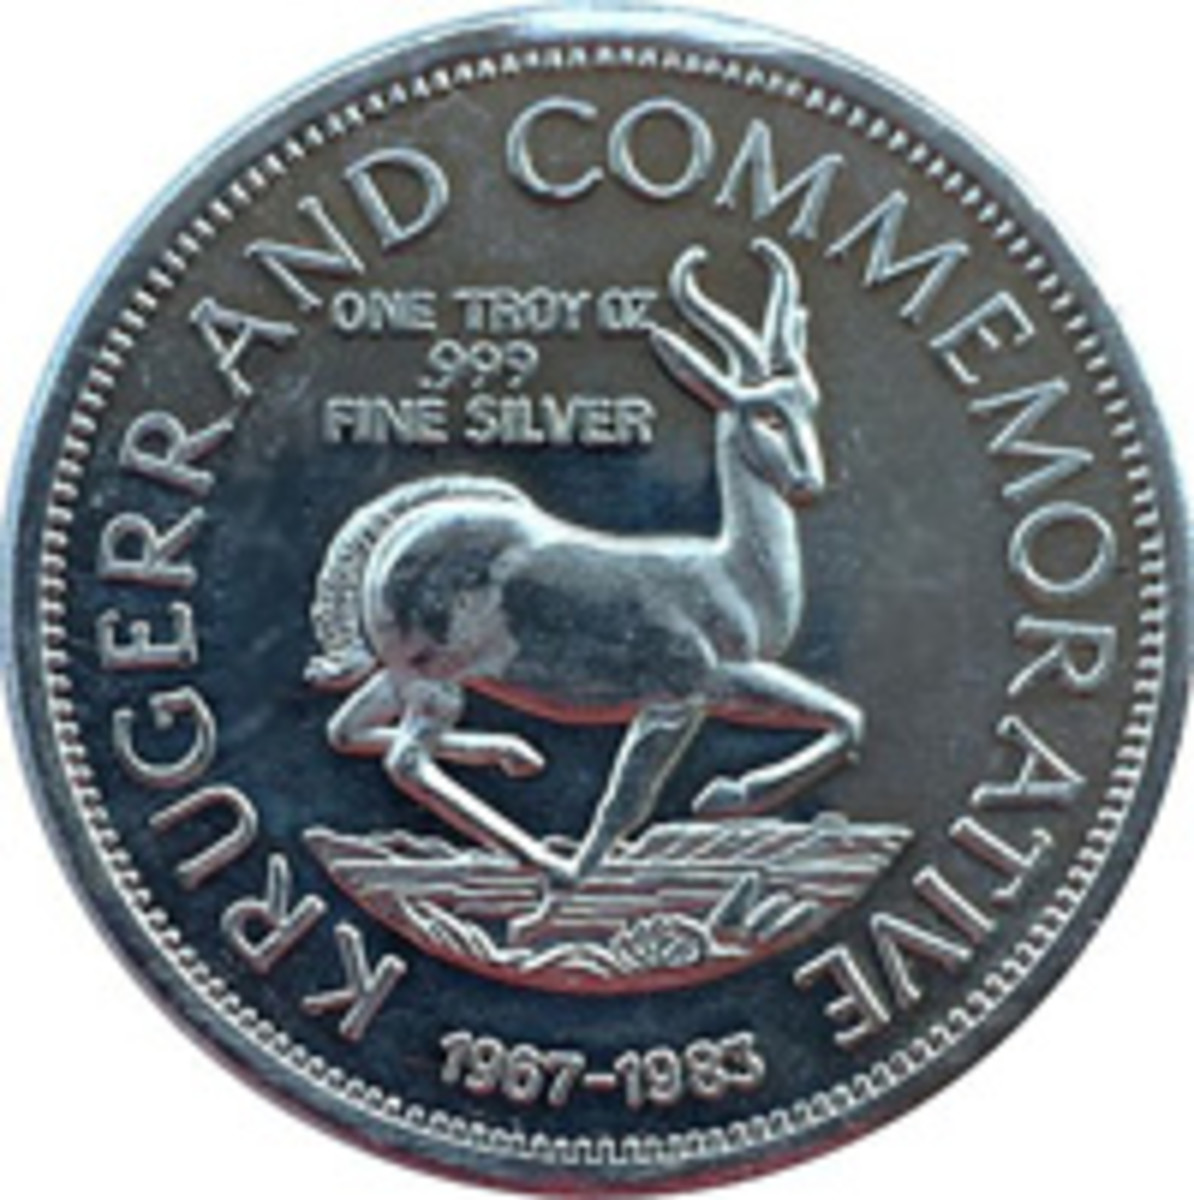 Not a Krugerrand and a breach of trademark. Privately made silver round not authorized by the South African Mint.